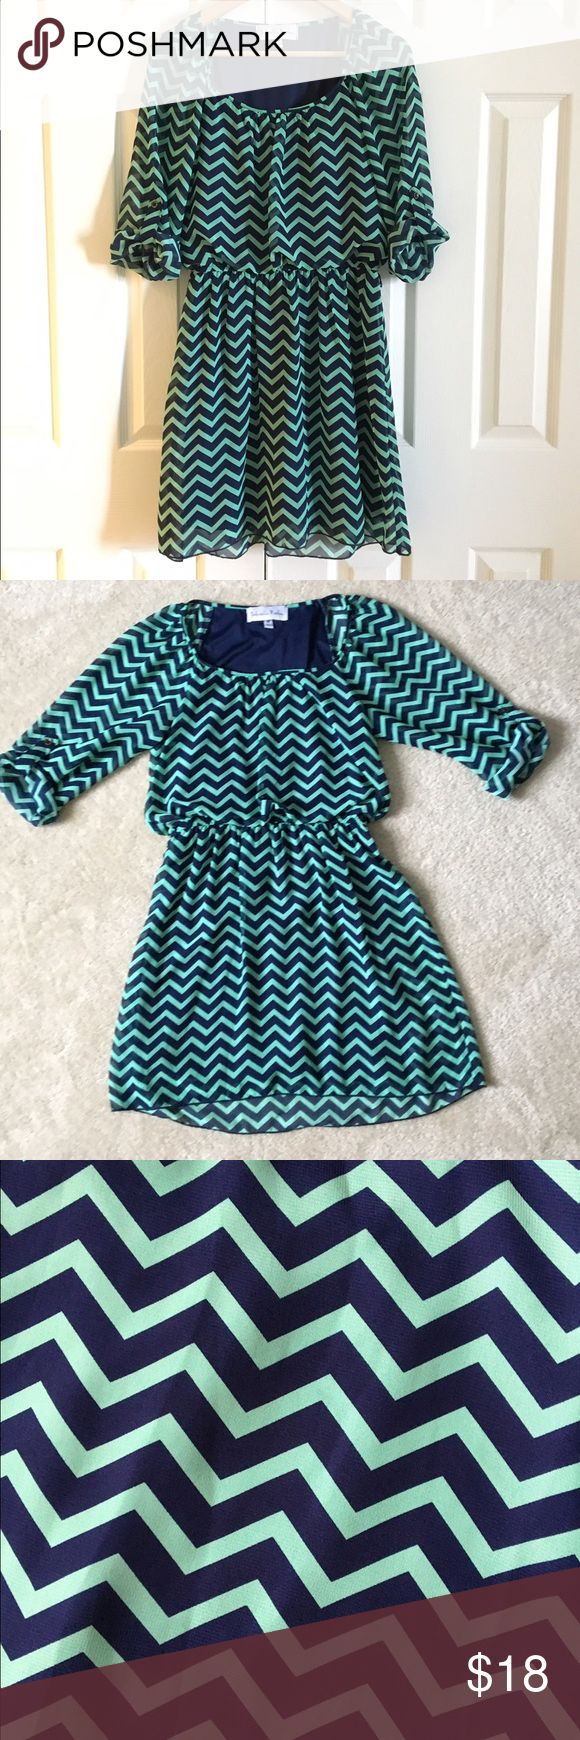 Gabriella Rocha green / blue chevron chiffon dress Gabriella Rocha blue and green chevron chiffon dress with 3/4 sleeves in great condition. Knee length, fits M size 6-10 Gabriella Rocha Dresses Long Sleeve